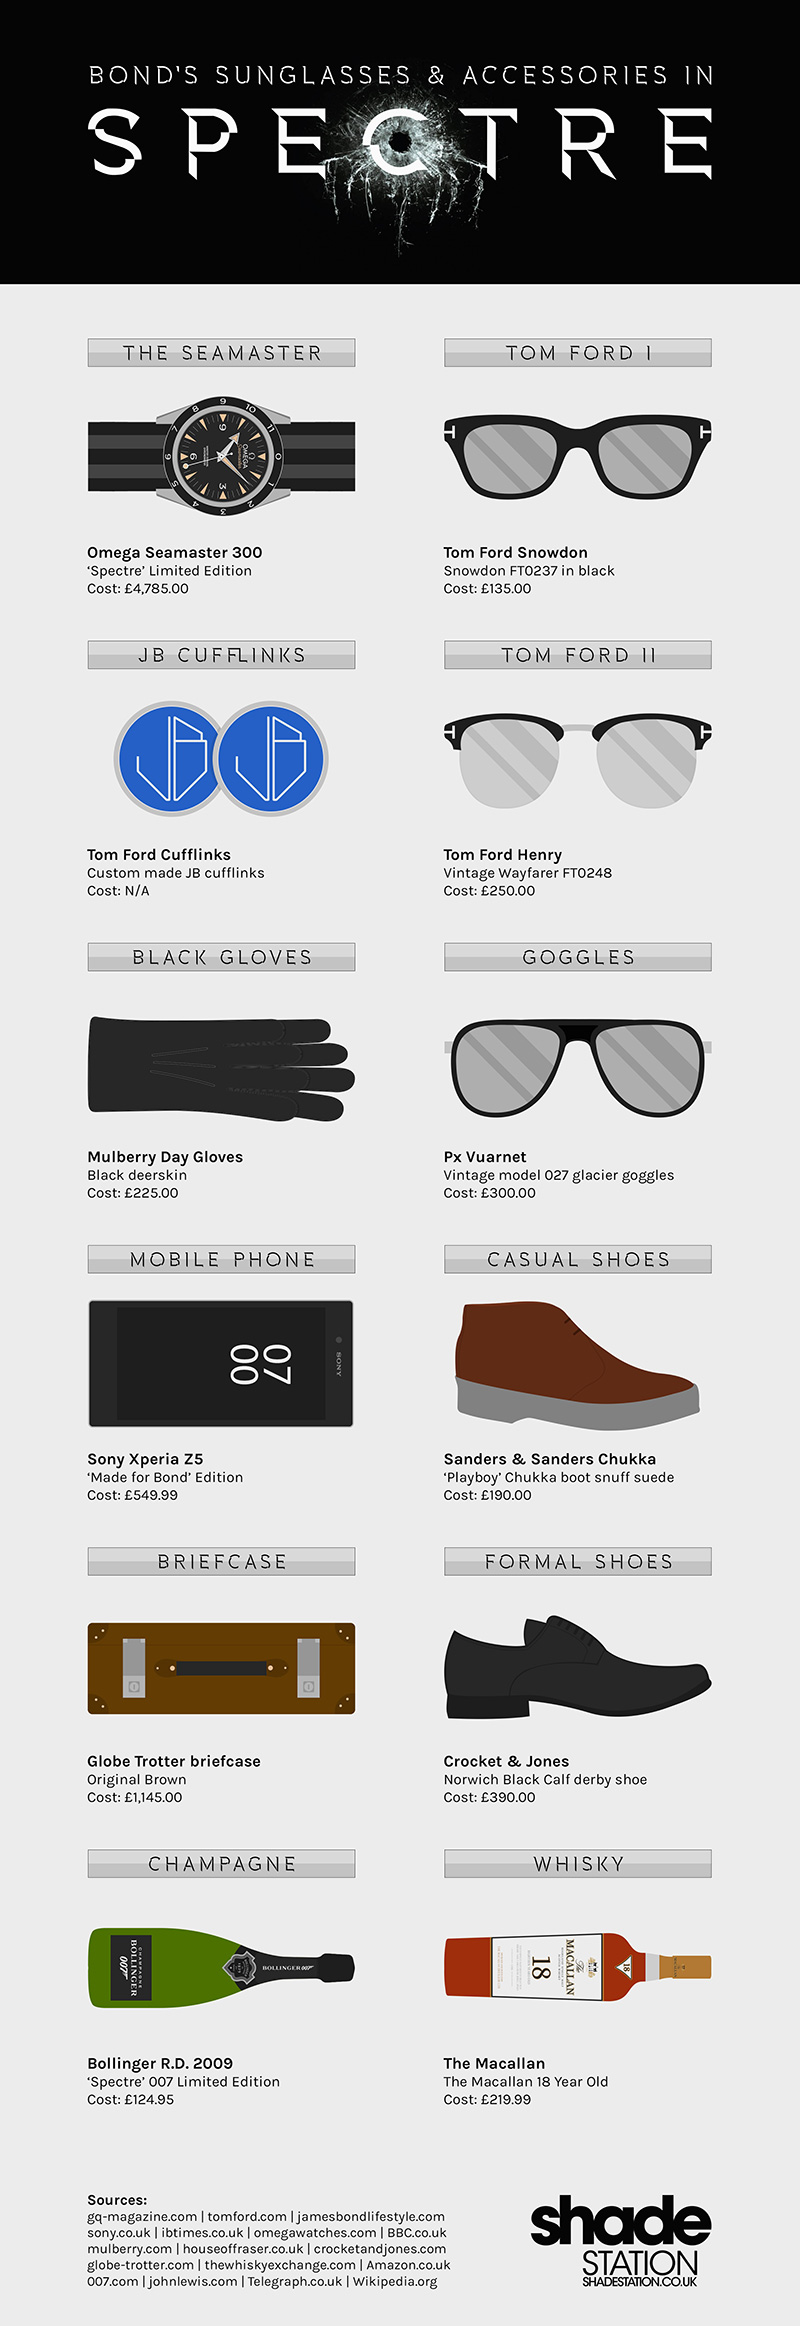 Bond's Sunglasses & Accessories in Spectre